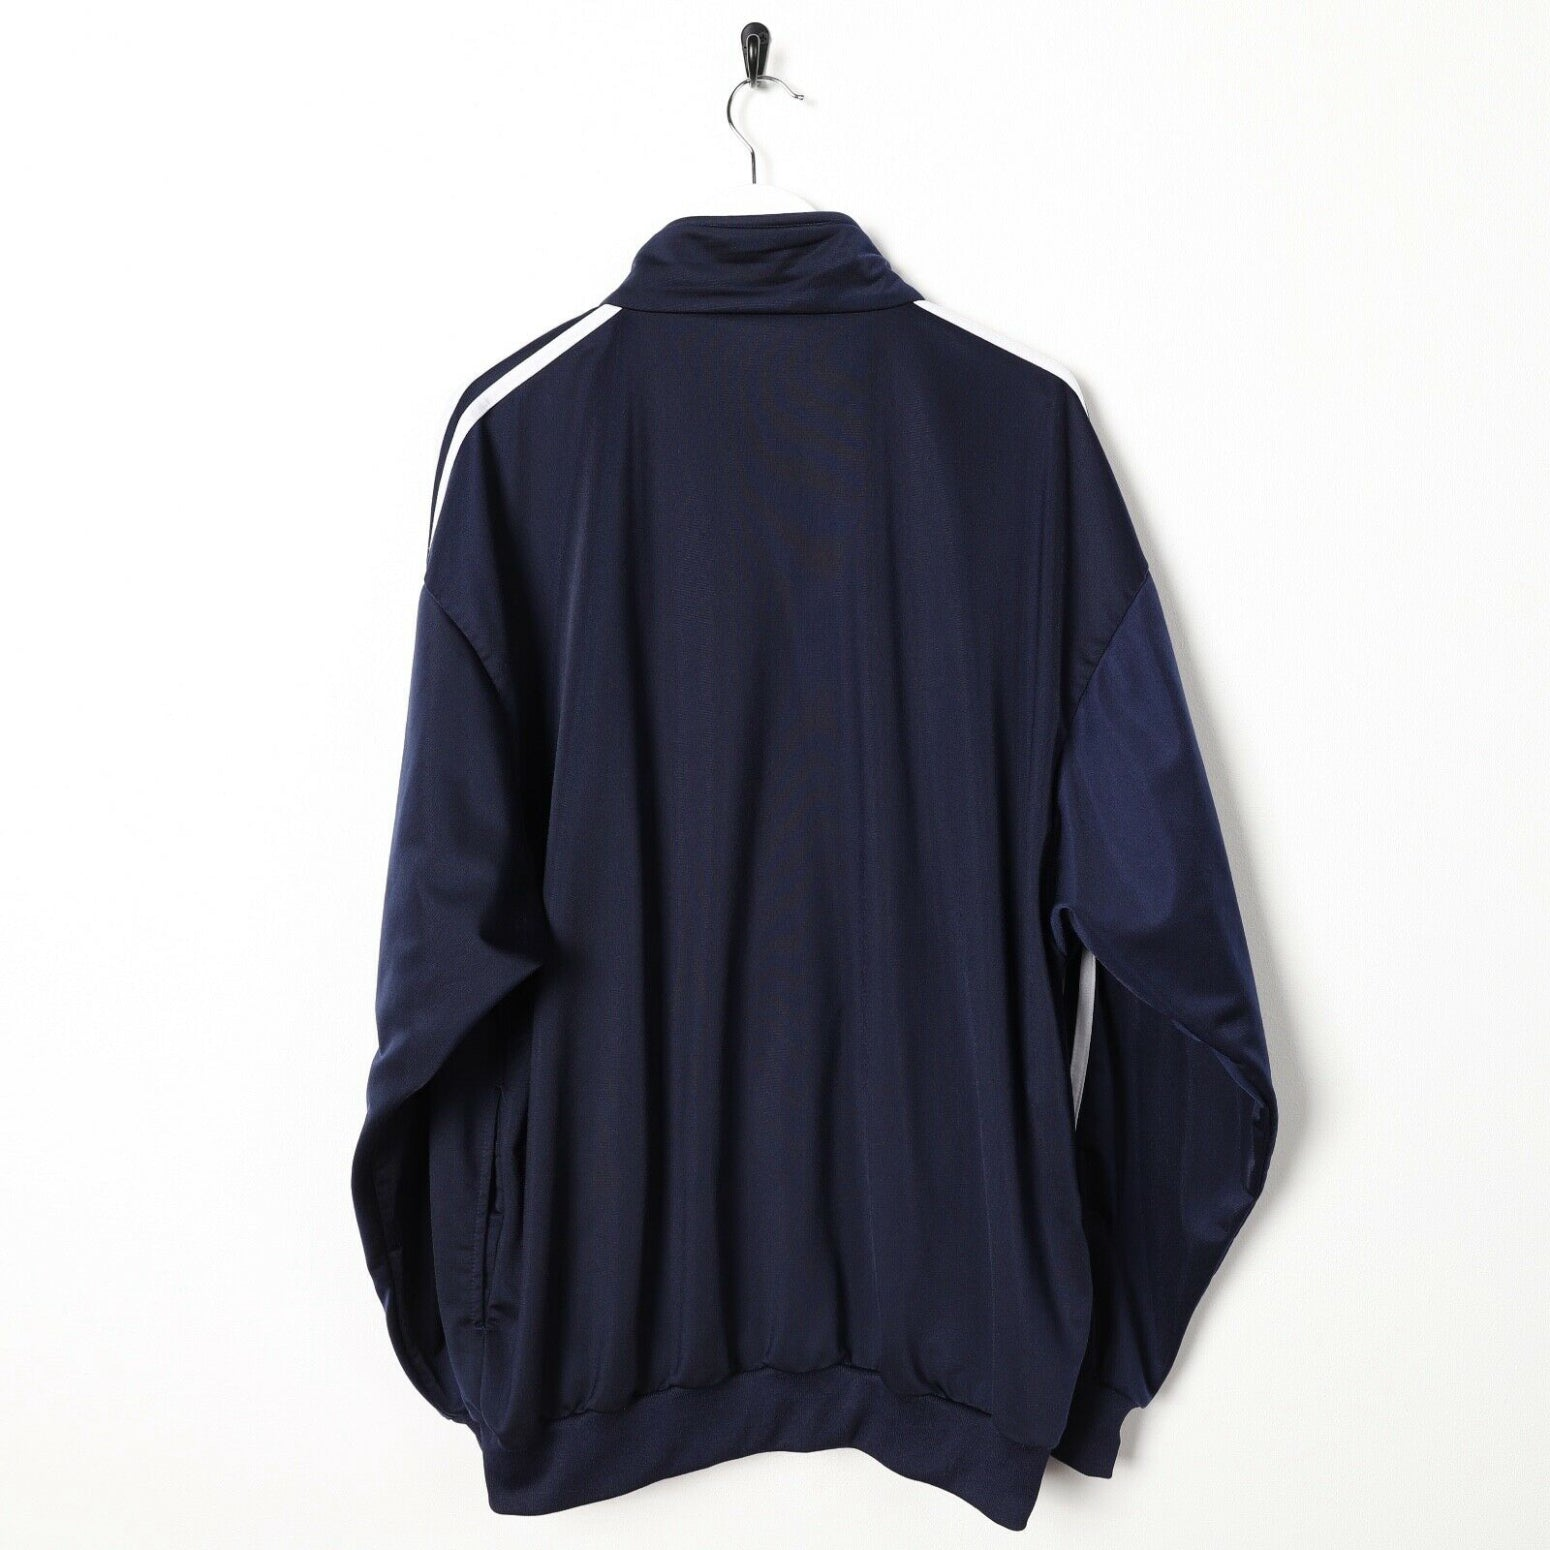 Vintage 80s ADIDAS Small Logo Track Top Jacket Navy Blue XL